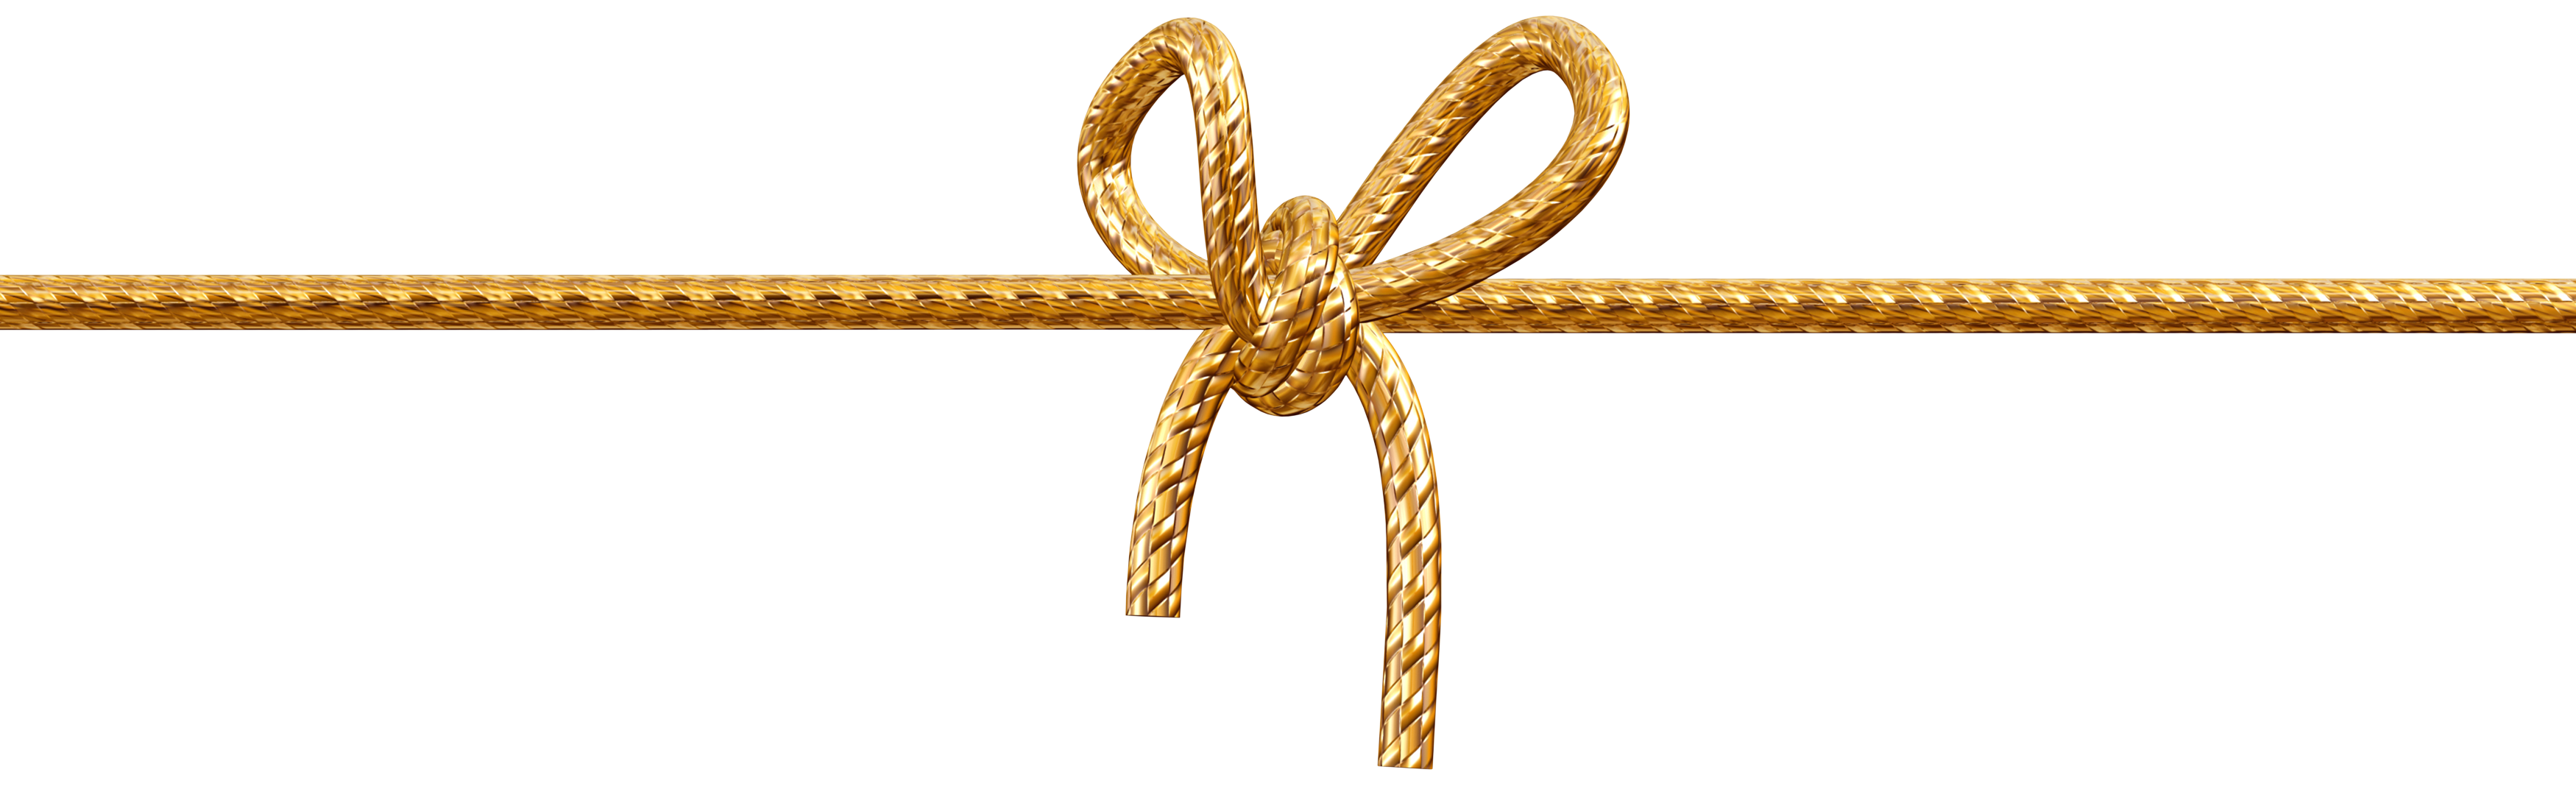 Rope knot png. Transparent pictures free icons